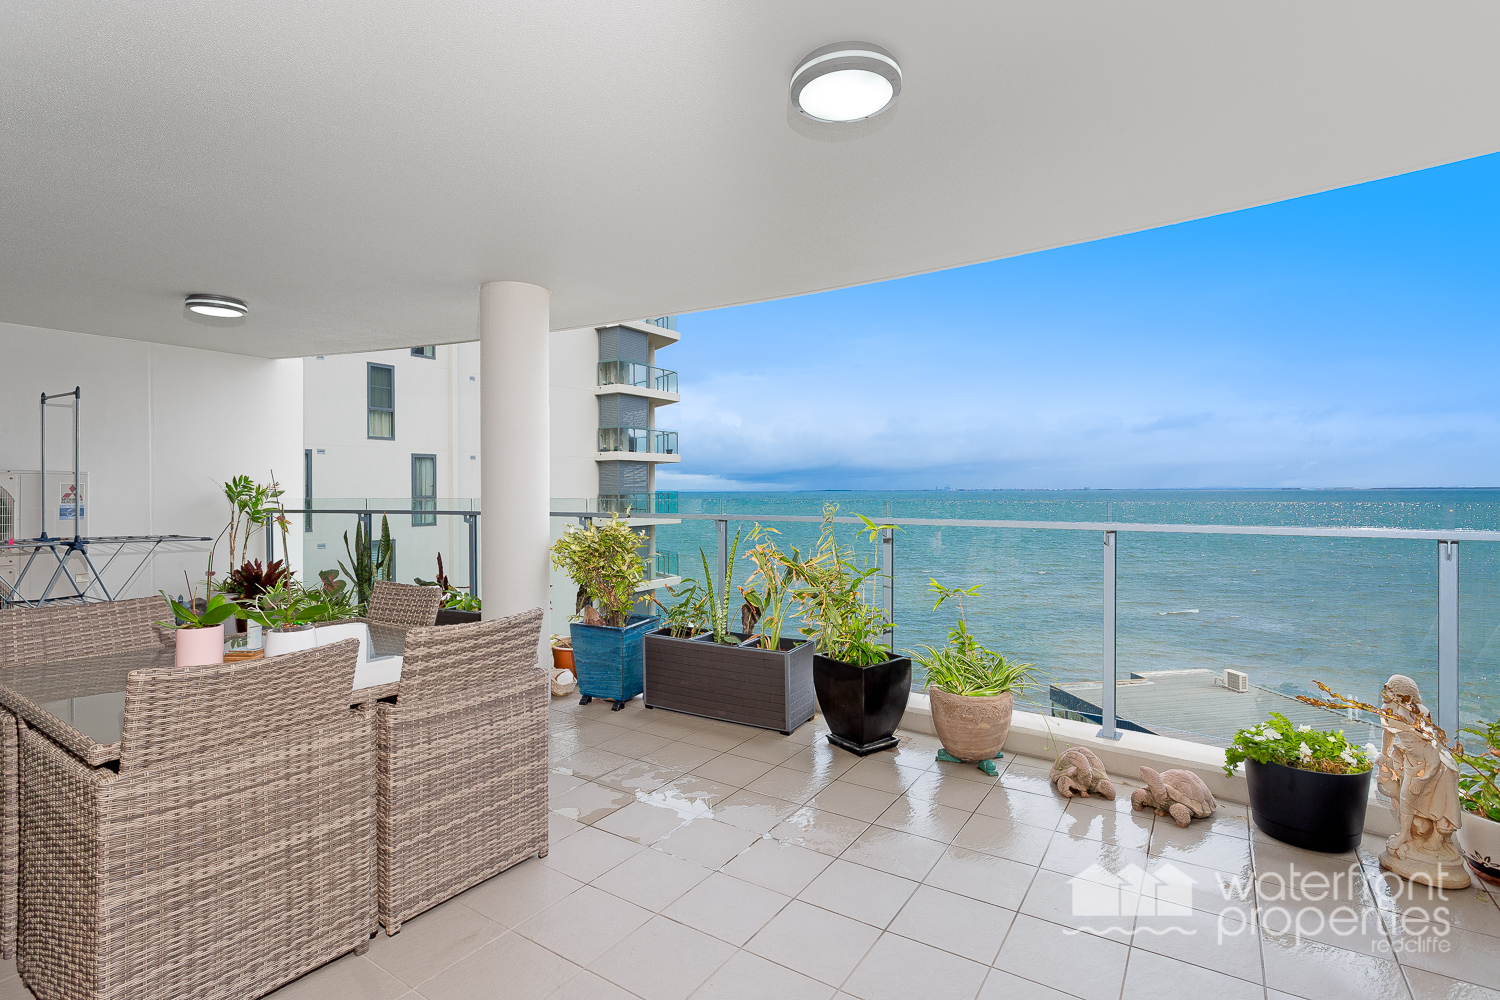 52/36 WOODCLIFFE CRESCENT, WOODY POINT  QLD  4019 7